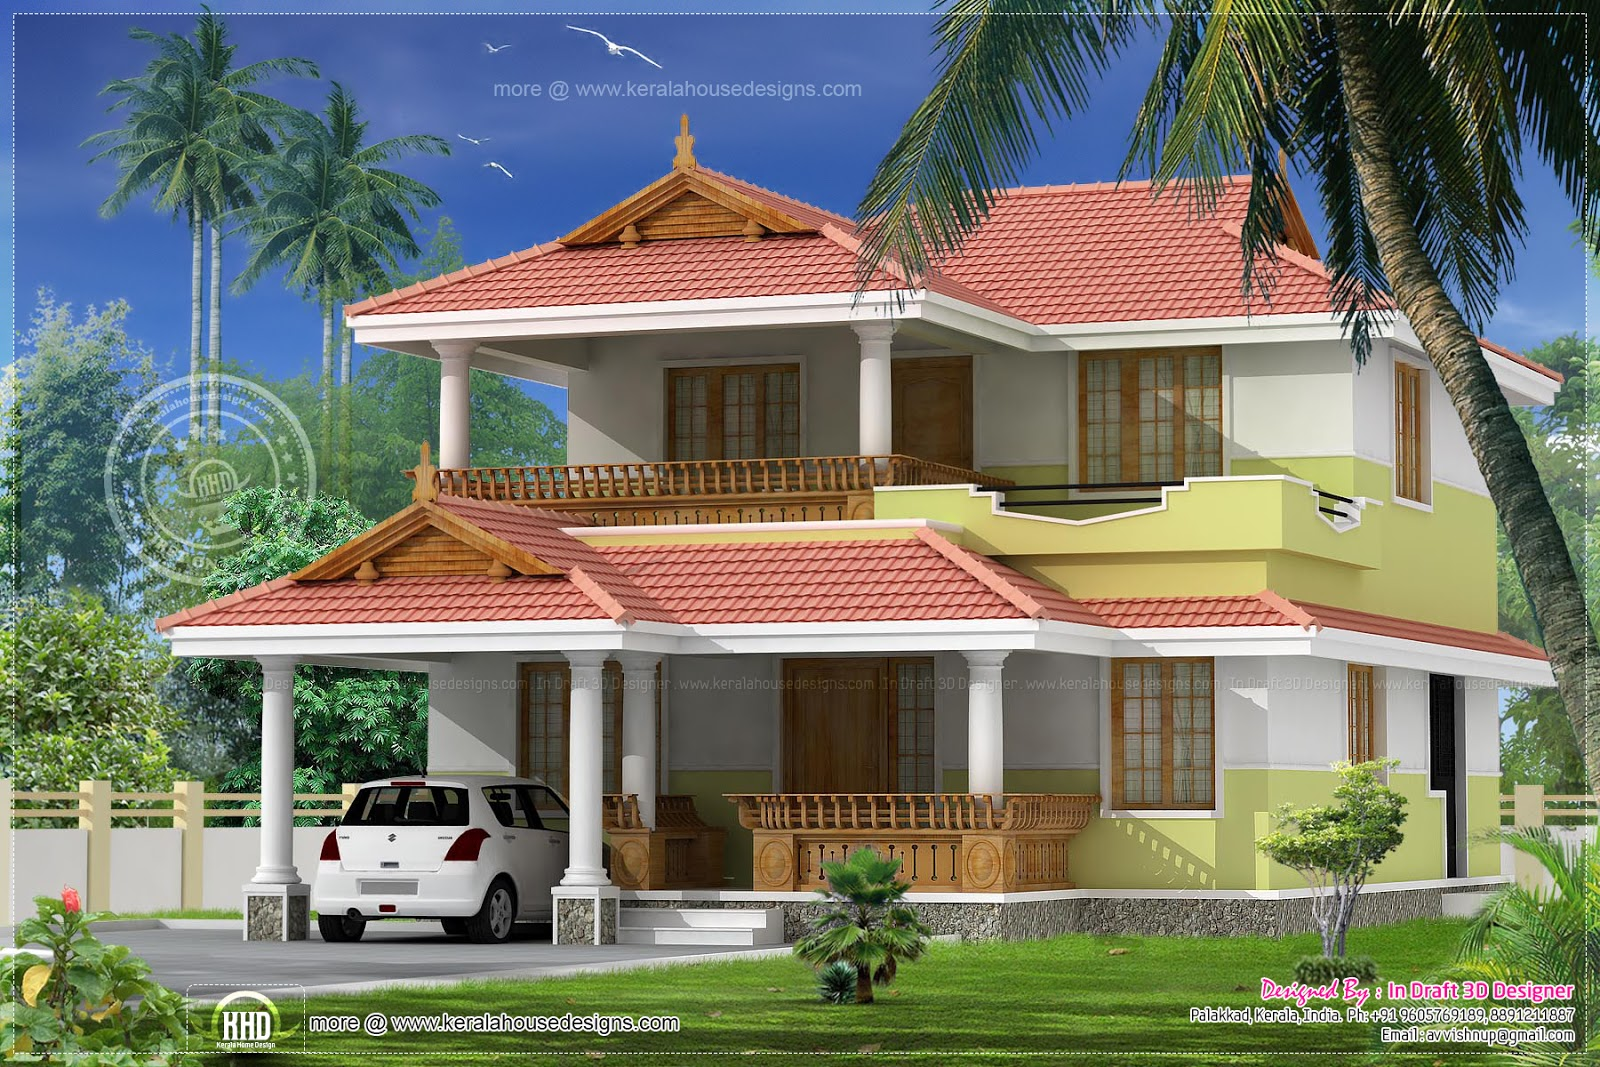 Kerala house model small house joy studio design gallery Small home models pictures